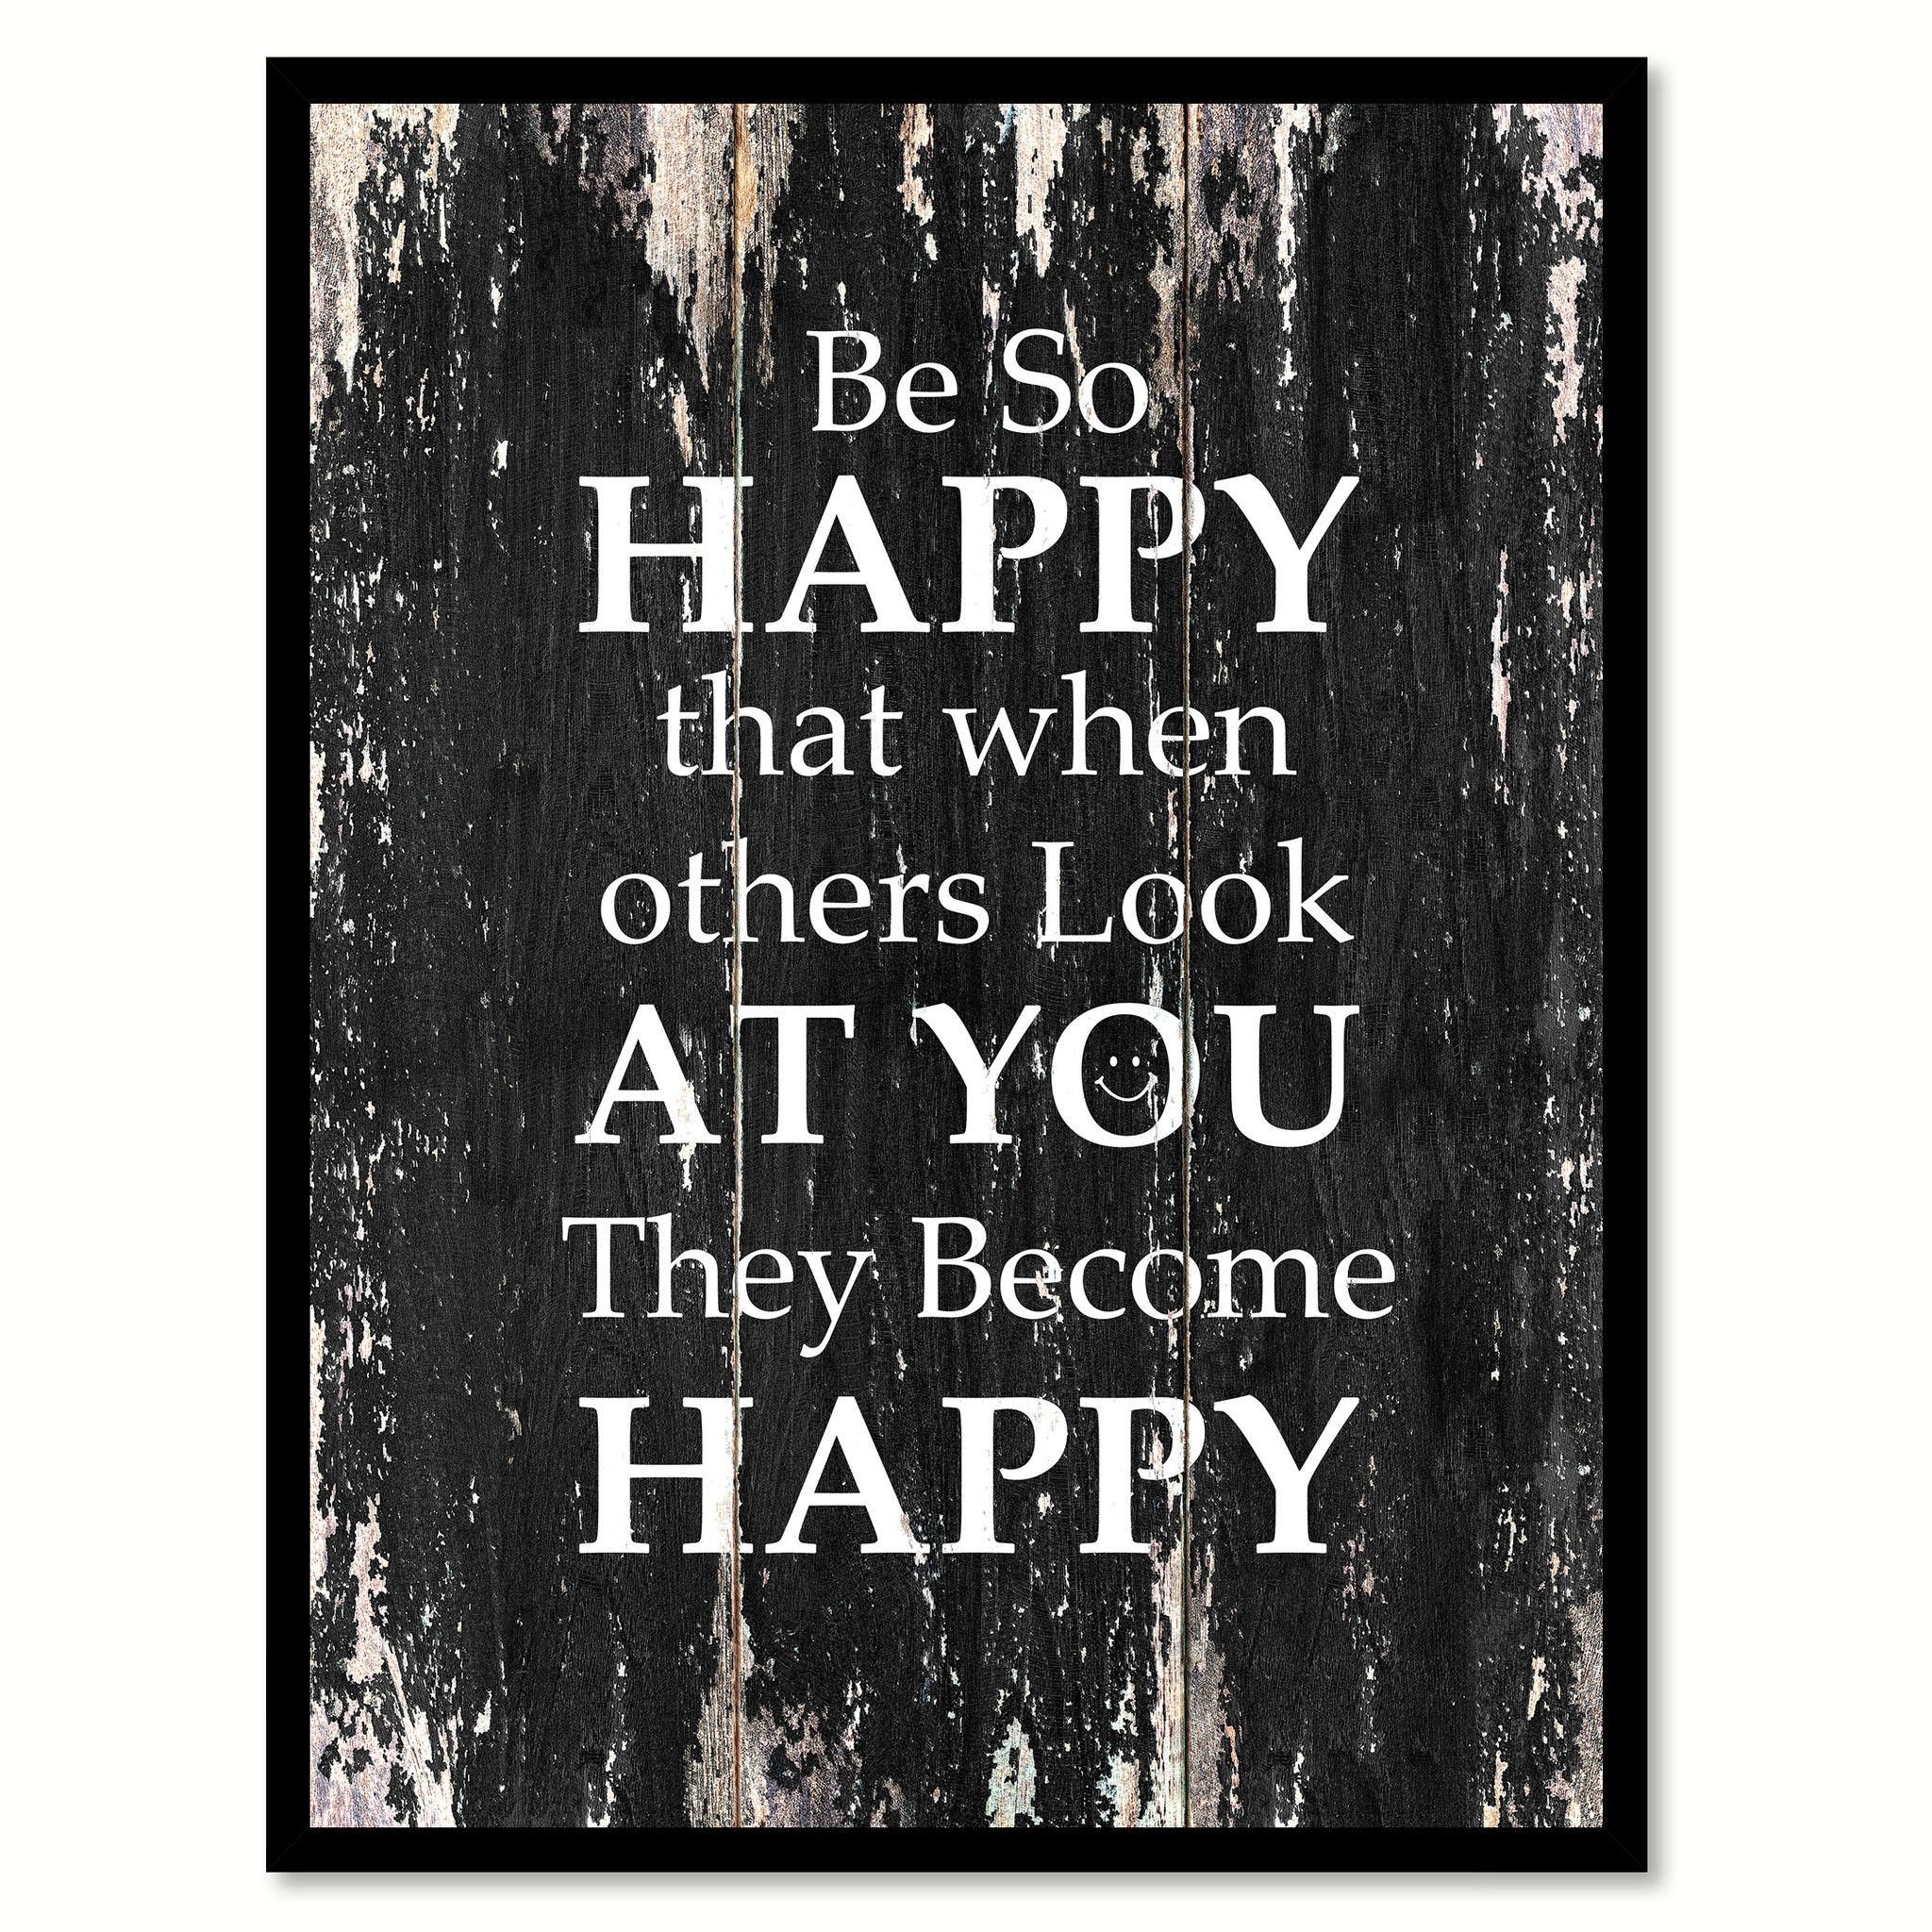 Be So Happy That When Others Look At You They Become Happy Motivational Quote Saying Canvas Print With Picture Wall Art Gift Home Decor Wall Art Wall Art Decor